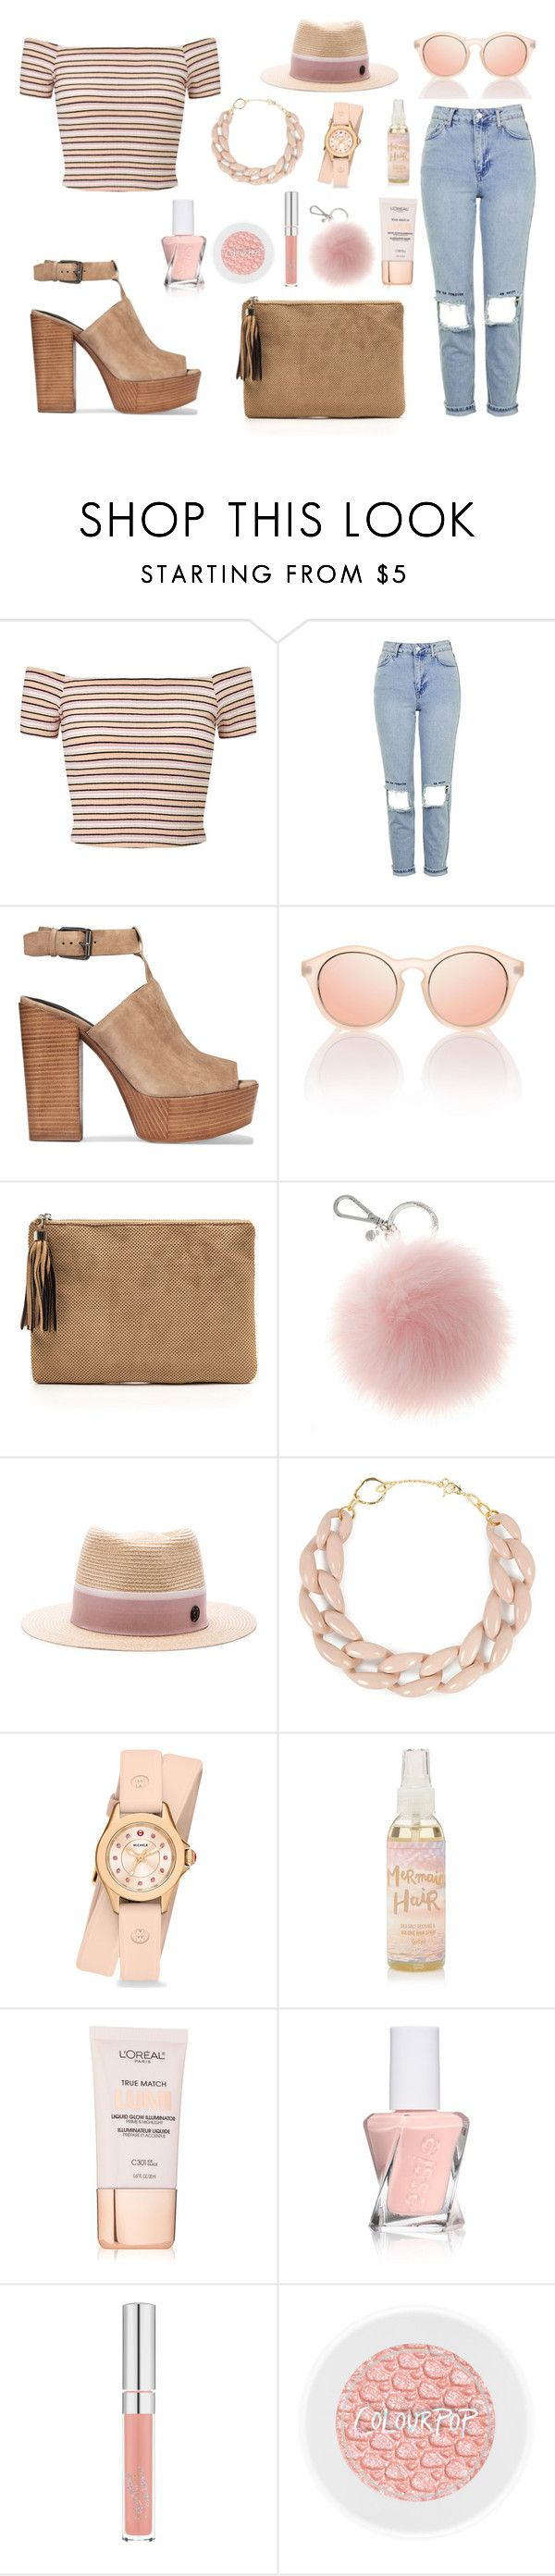 """Mariia"" by ballereyna ❤ liked on Polyvore featuring Miss Selfridge, Topshop, Rebecca Minkoff, Maison Michel, DIANA BROUSSARD, Michele, L'Oréal Paris and Essie"